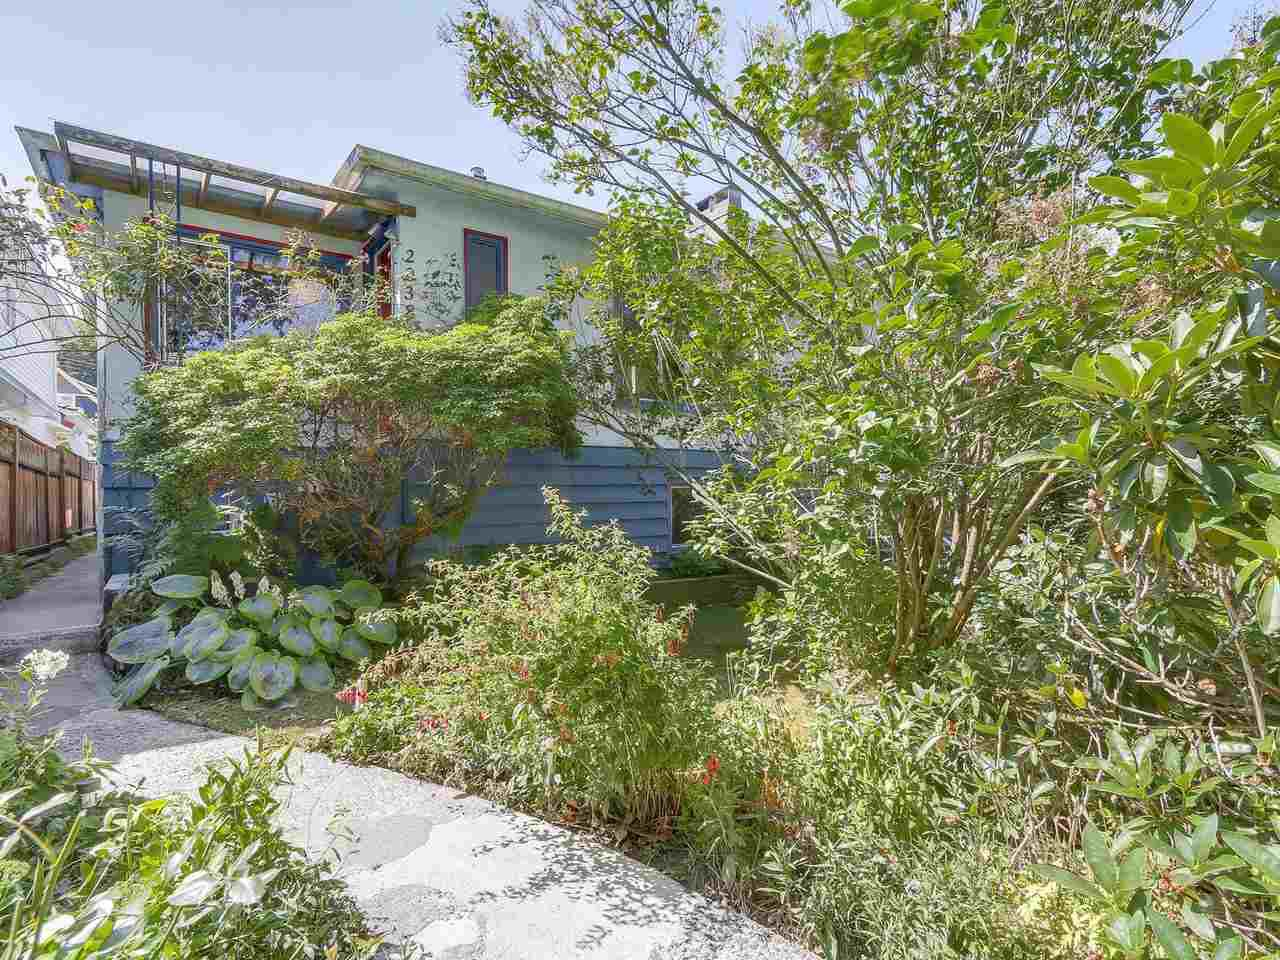 Main Photo: 2038 E 2ND Avenue in Vancouver: Grandview VE House for sale (Vancouver East)  : MLS®# R2193102